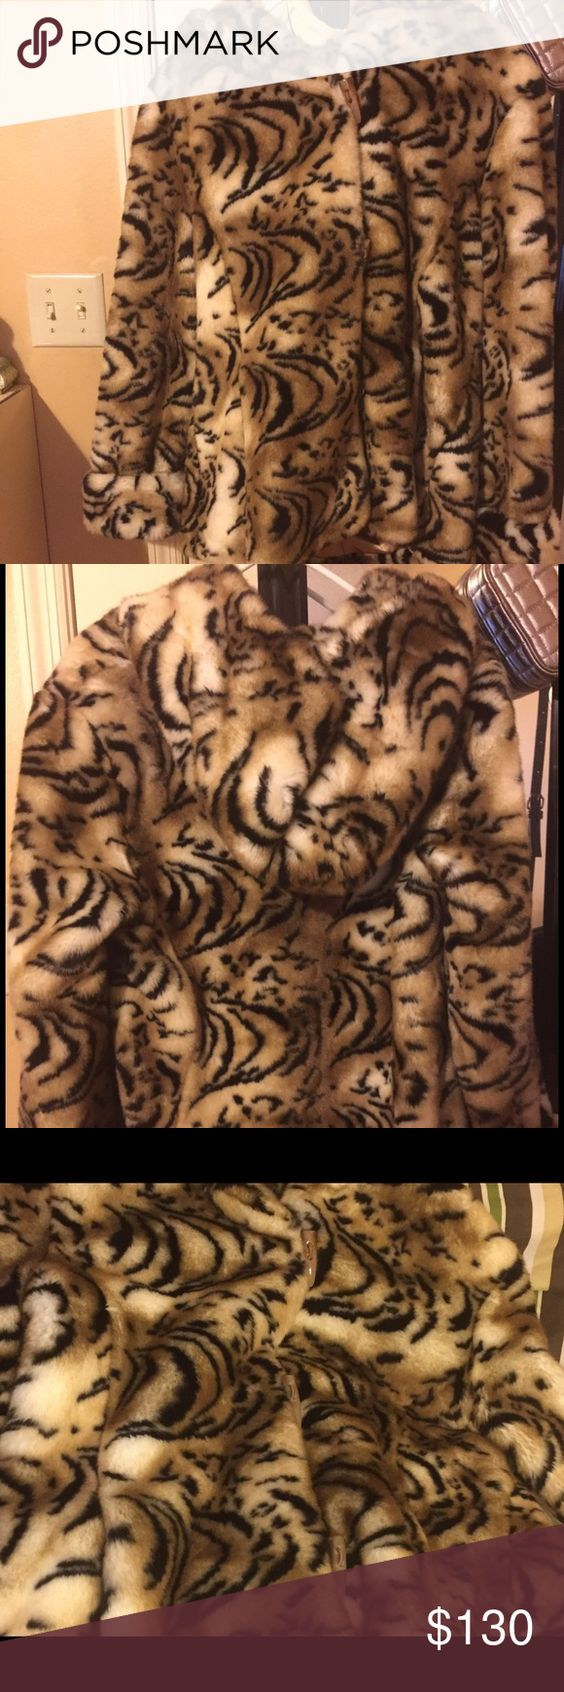 Tiger print faux fur hooded coat This coat a attention eye catcher. Its a size XS from Pamela McCoy tiger print but runs bigger like a extra large in misses. it's hip length roll up sleeves and hooded. I'm selling because I recently moved down south and don't need it anymore. I used to wear it in 0 degree weather and it would keep me nice and warm. Gently worn 5x about a few year old the plush faux fur is in excellent condition. pamela McCoy  Jackets & Coats